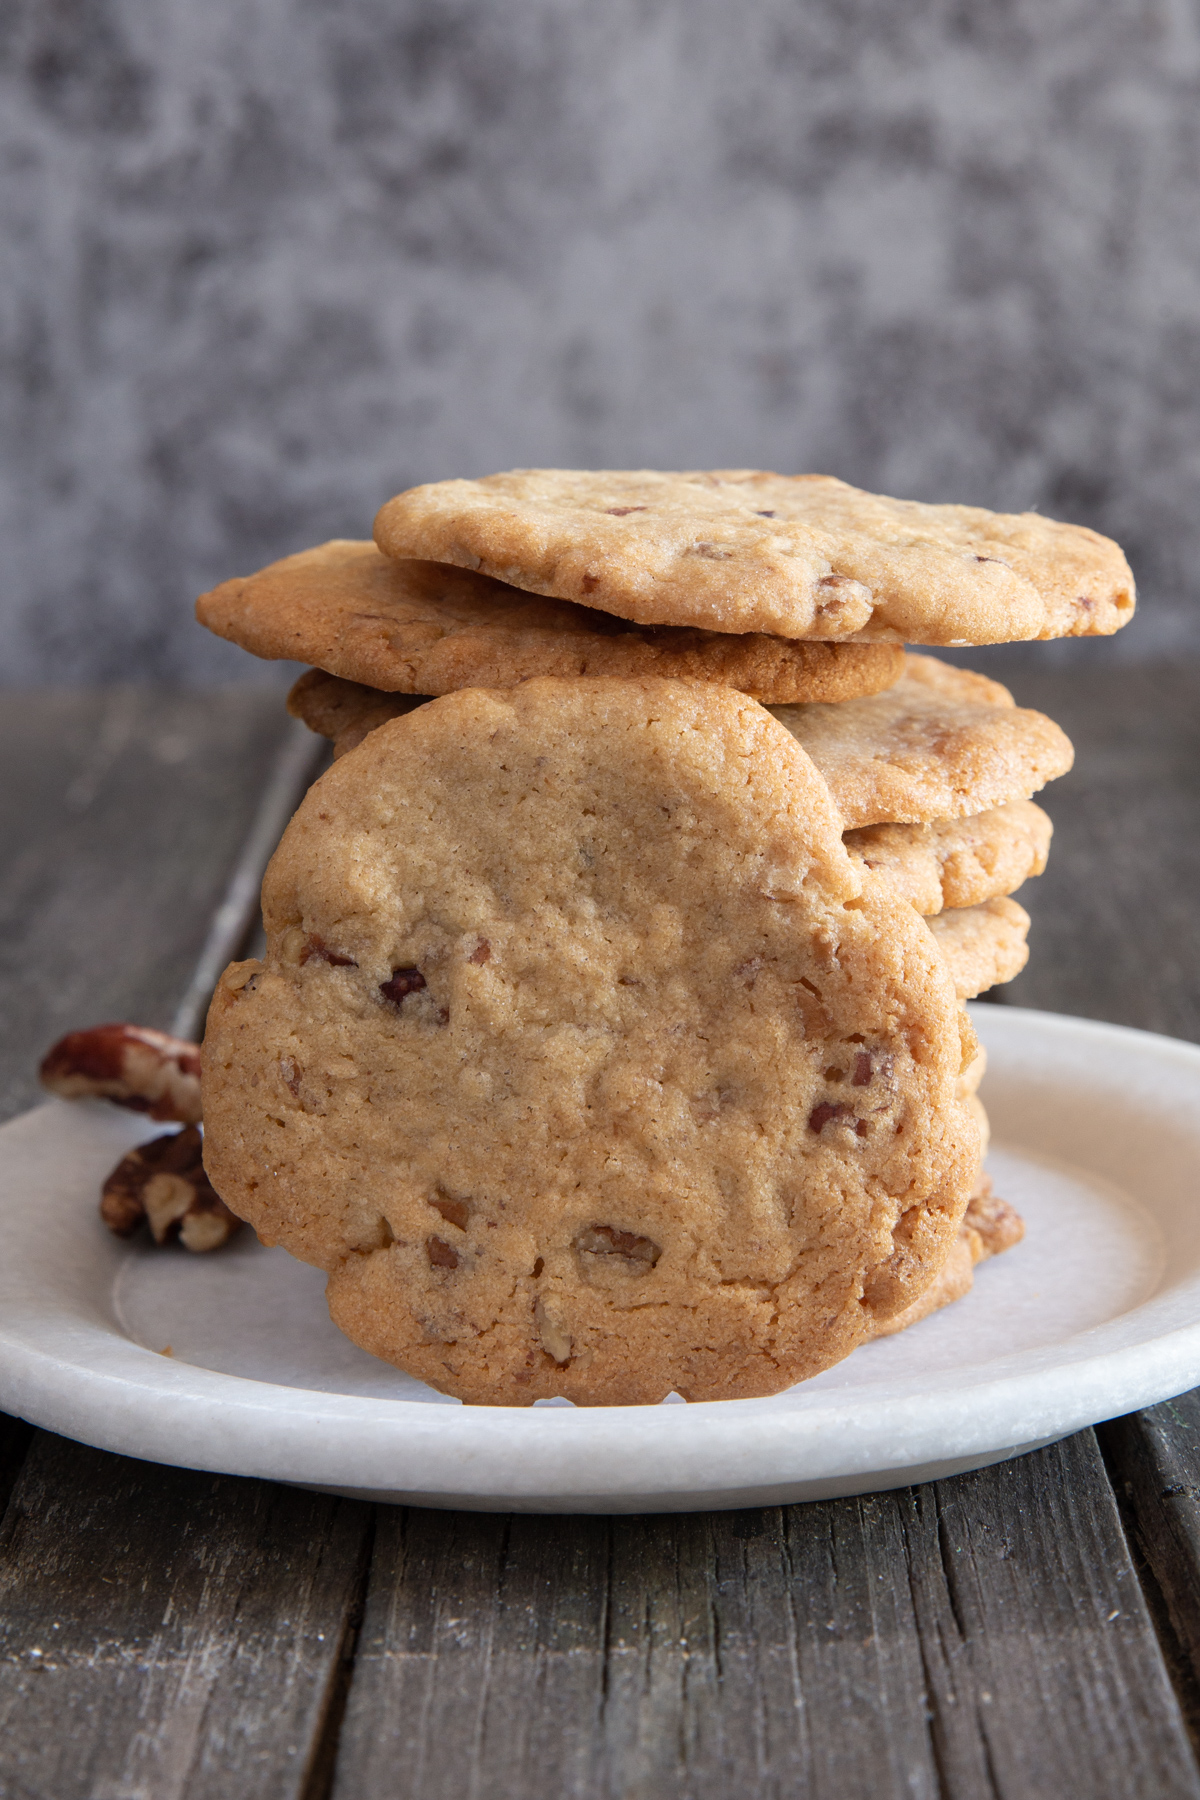 Stacked cookies with one leaning against them.